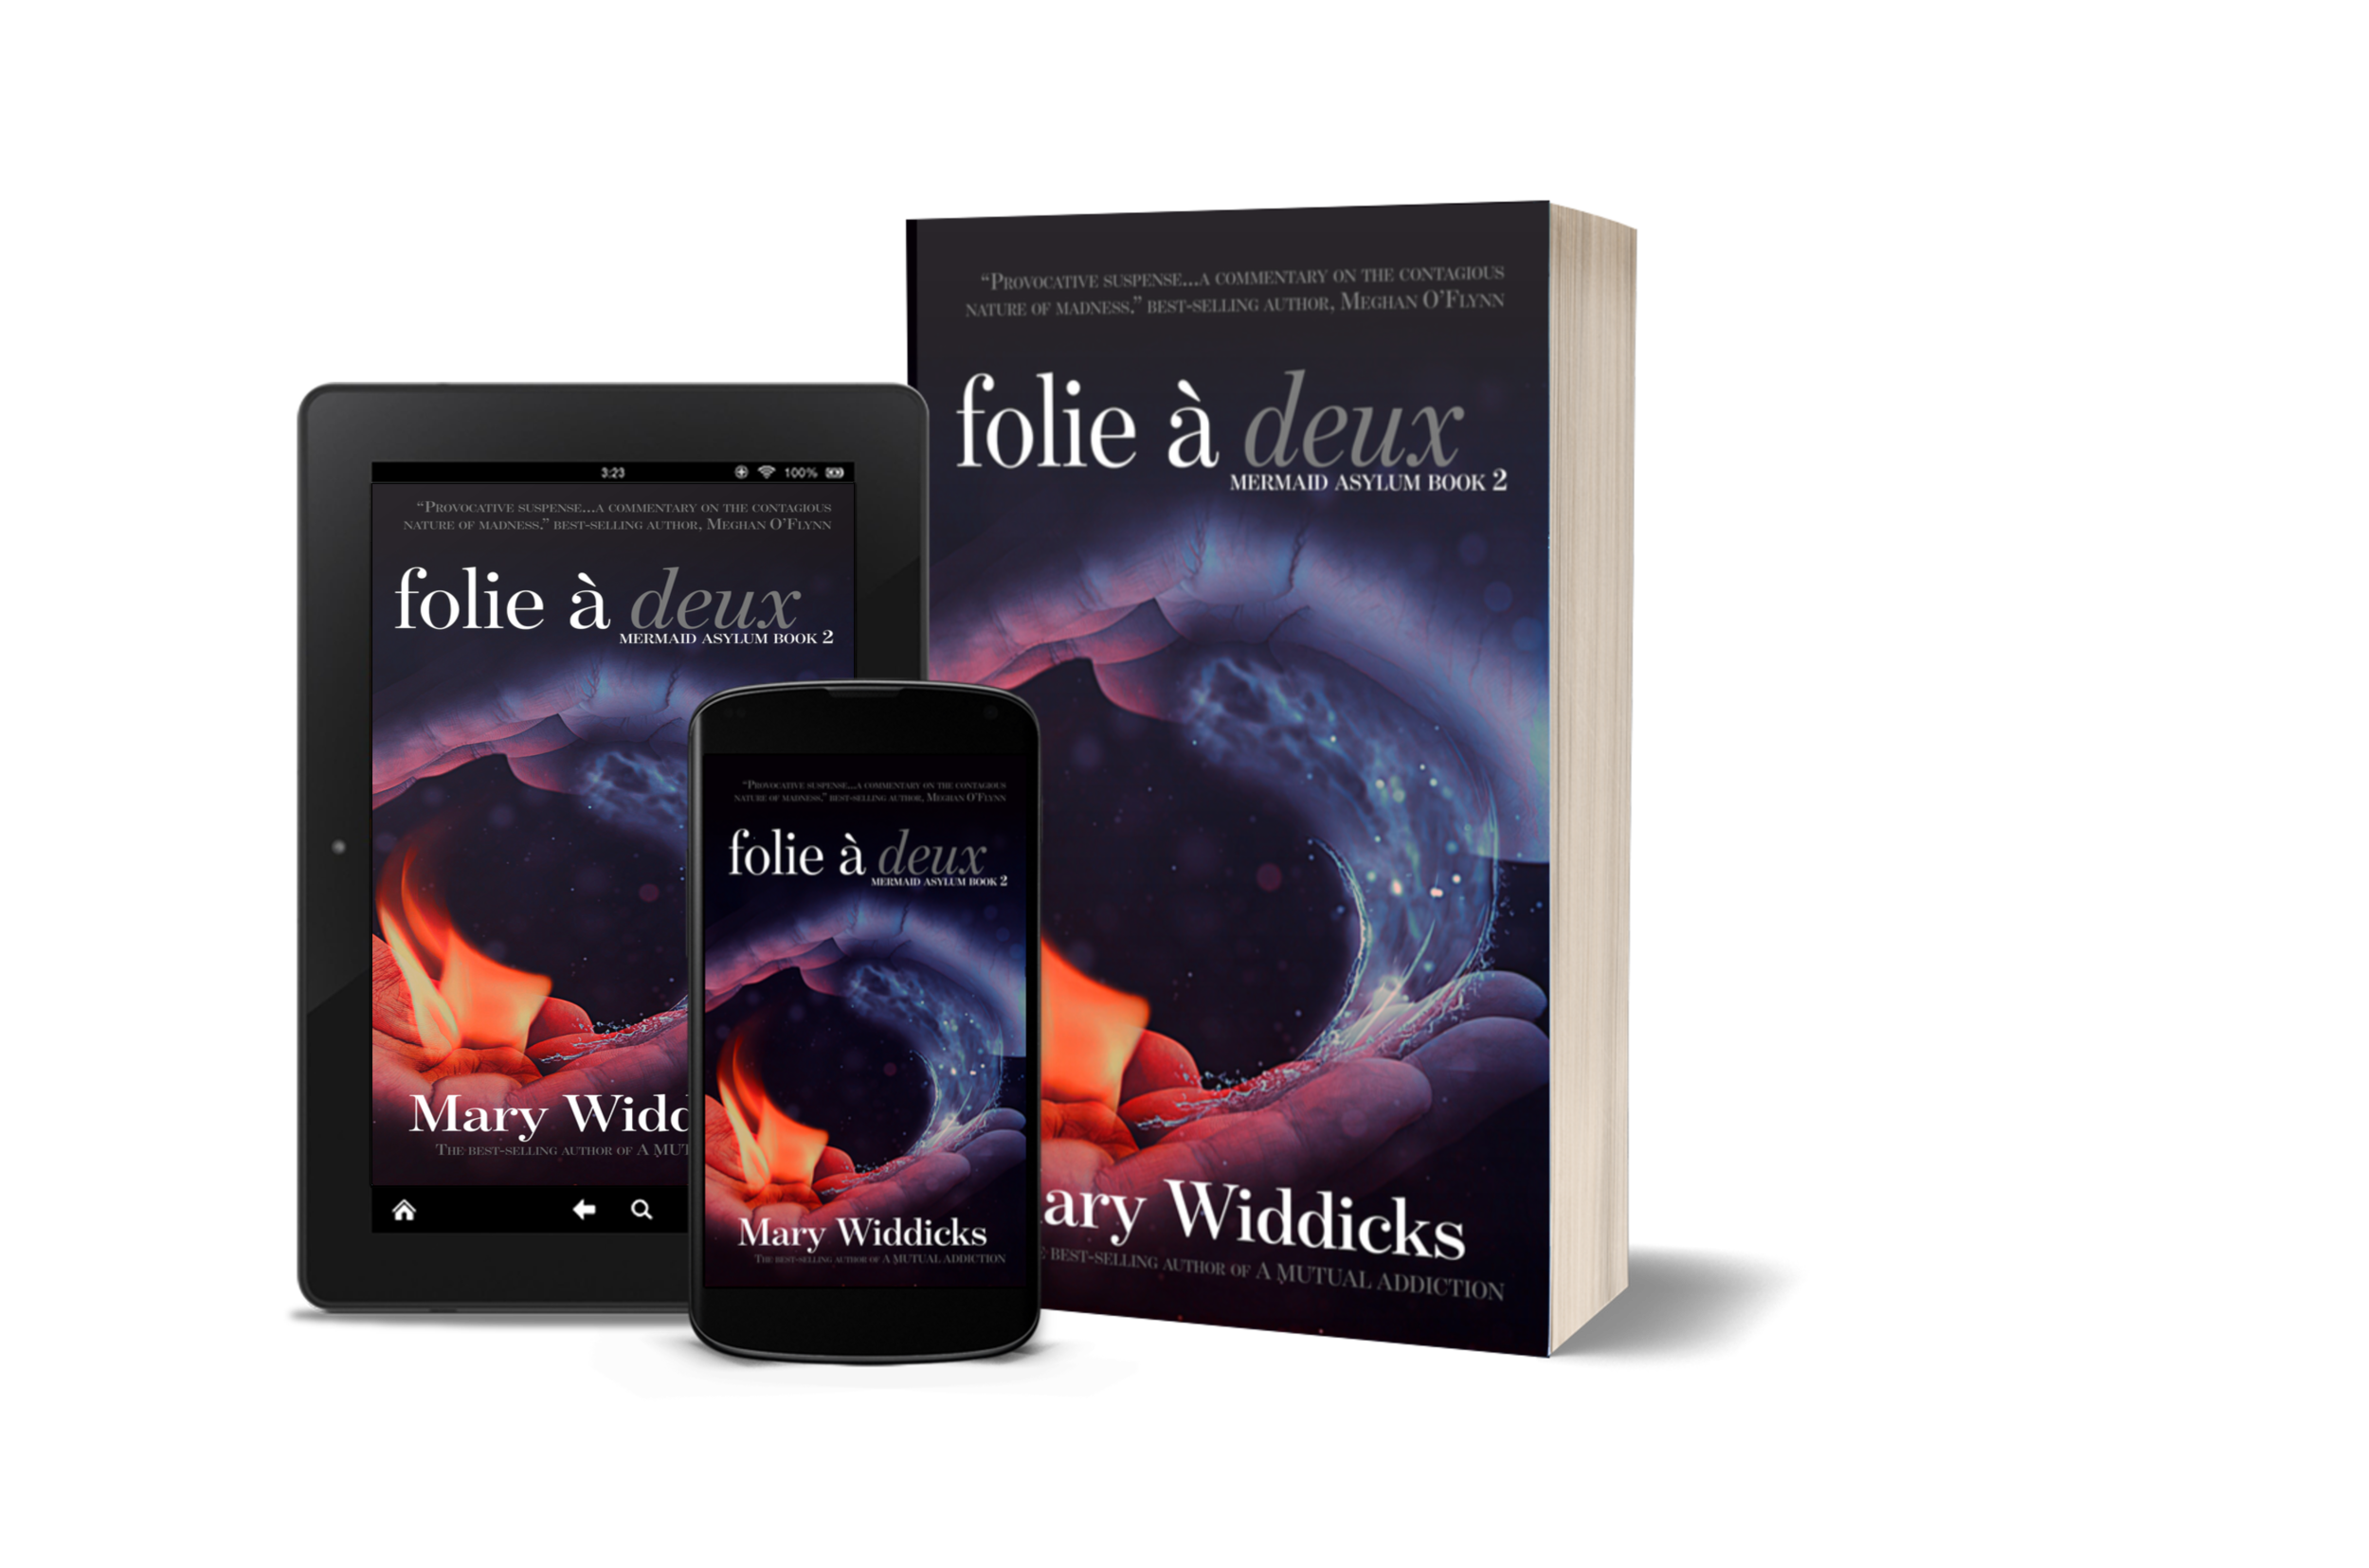 Folie new cover mock ups.png